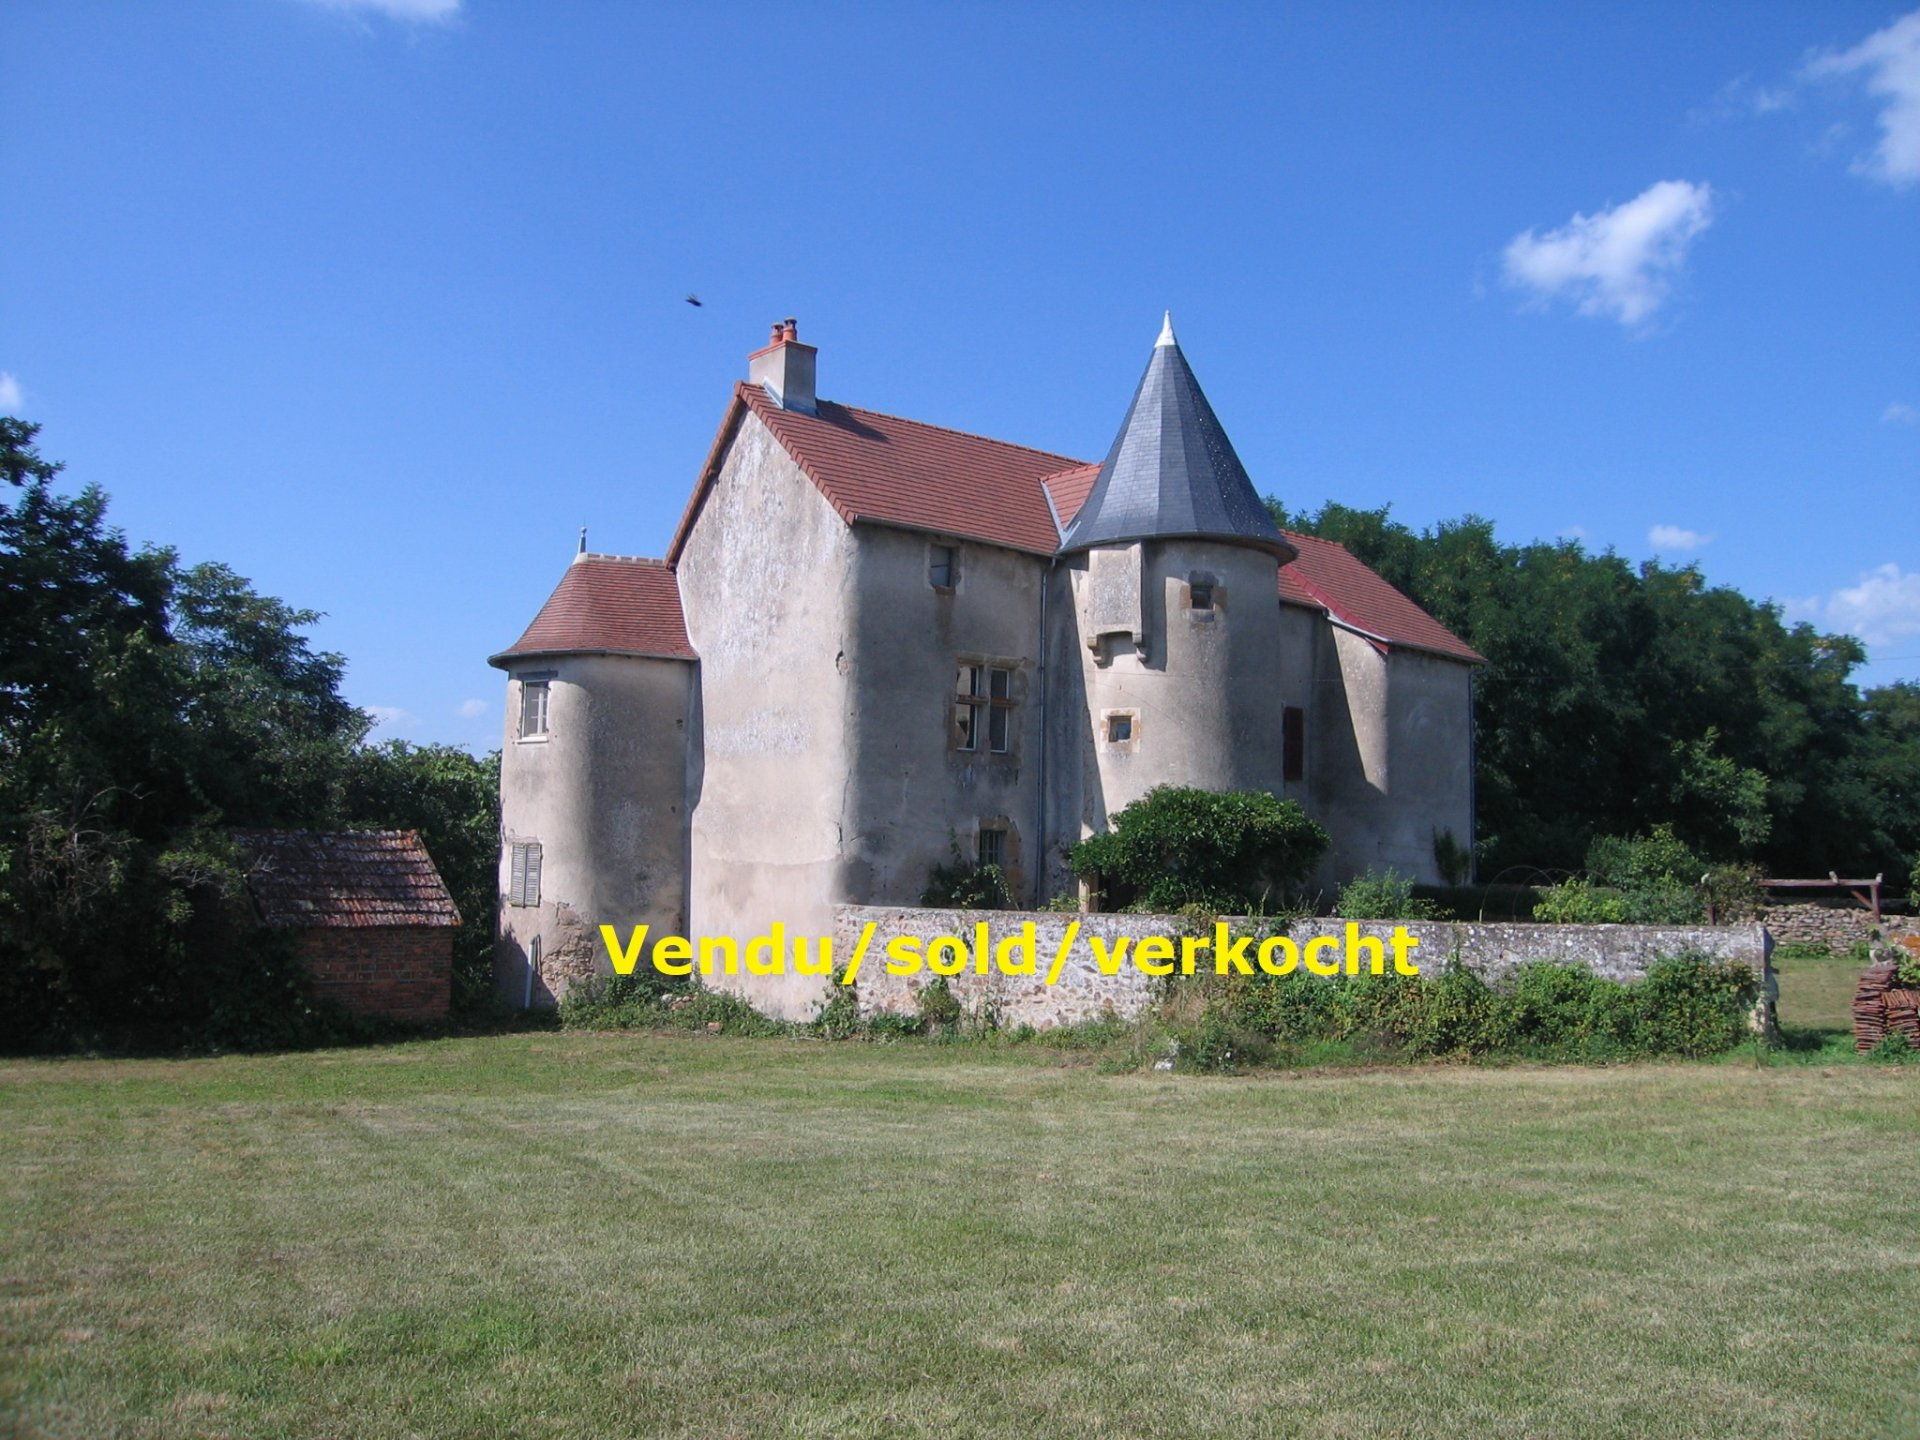 12th century castle in Burgundy SOLD